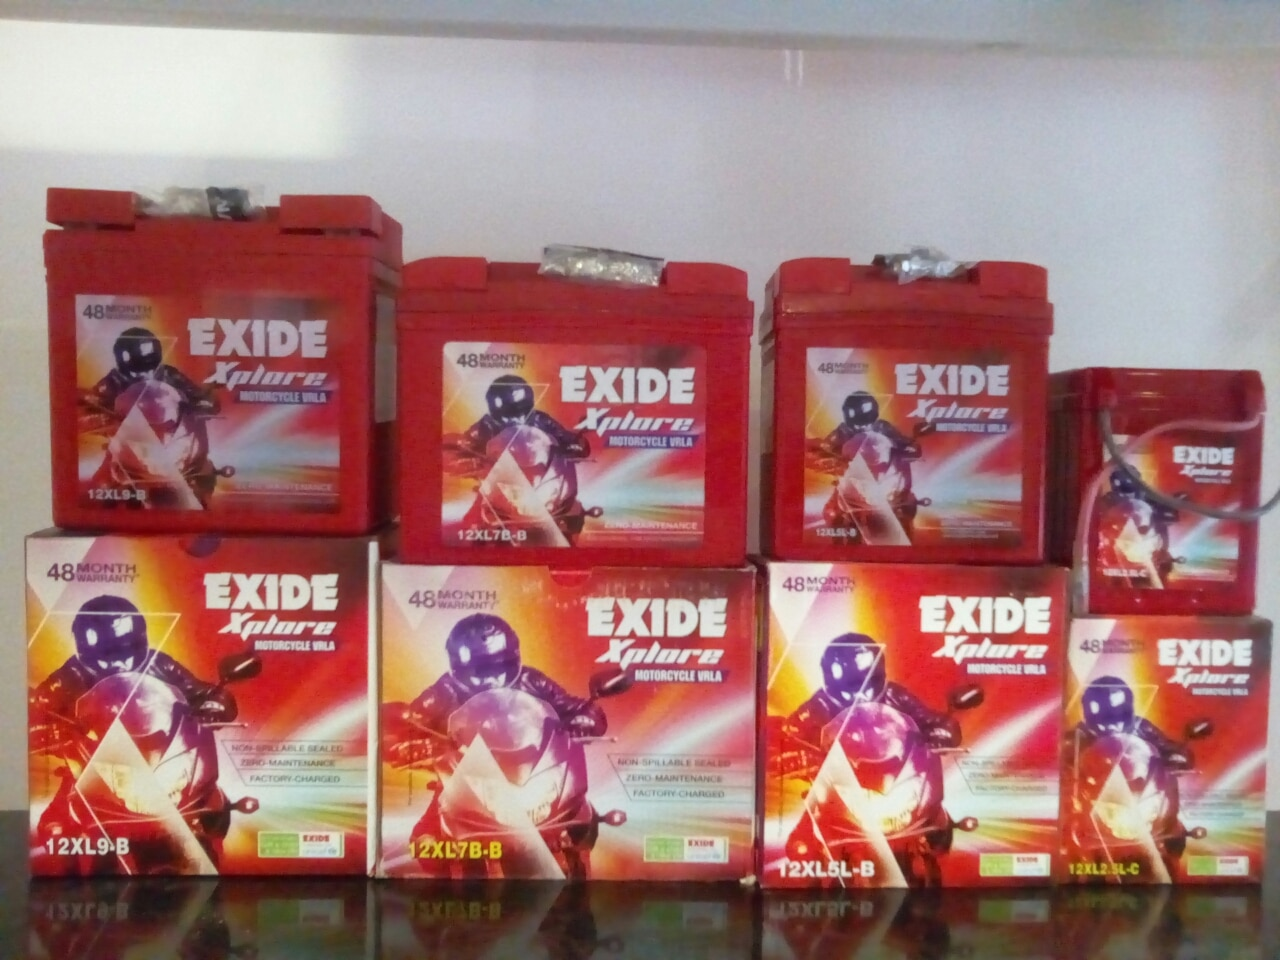 Exide xplore VRLA dry battery available for two wheeler application